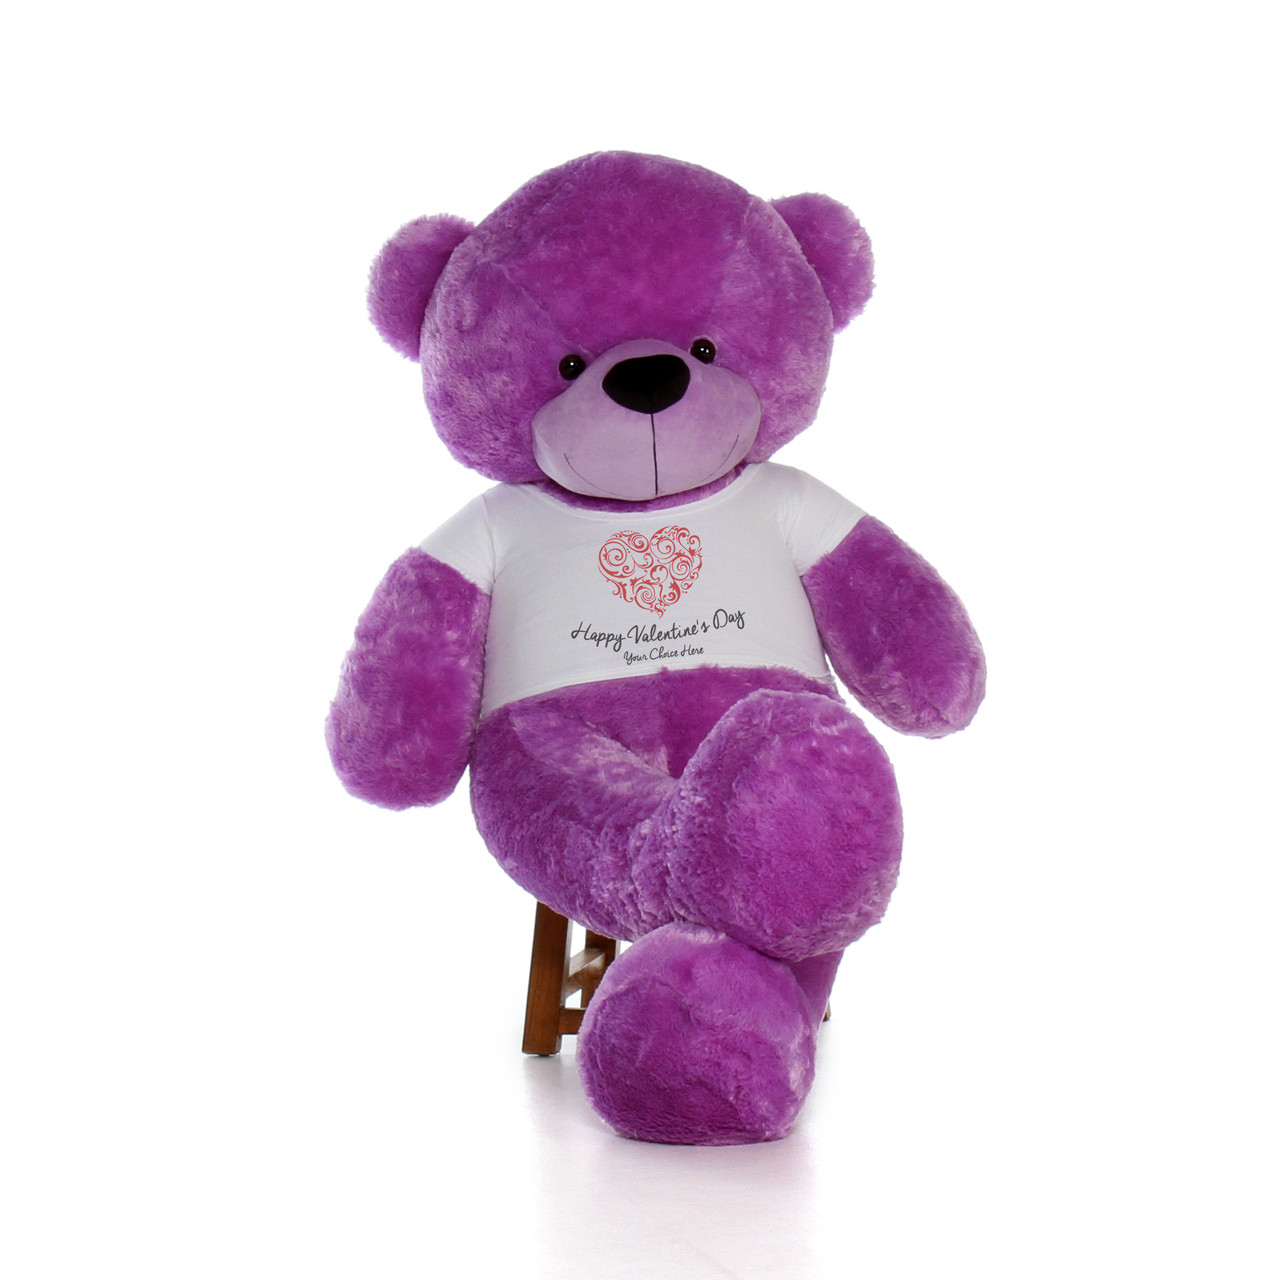 6ft life size happy valentines day teddy bears customize your fur color and shirt text choices - Valentine Day Bears